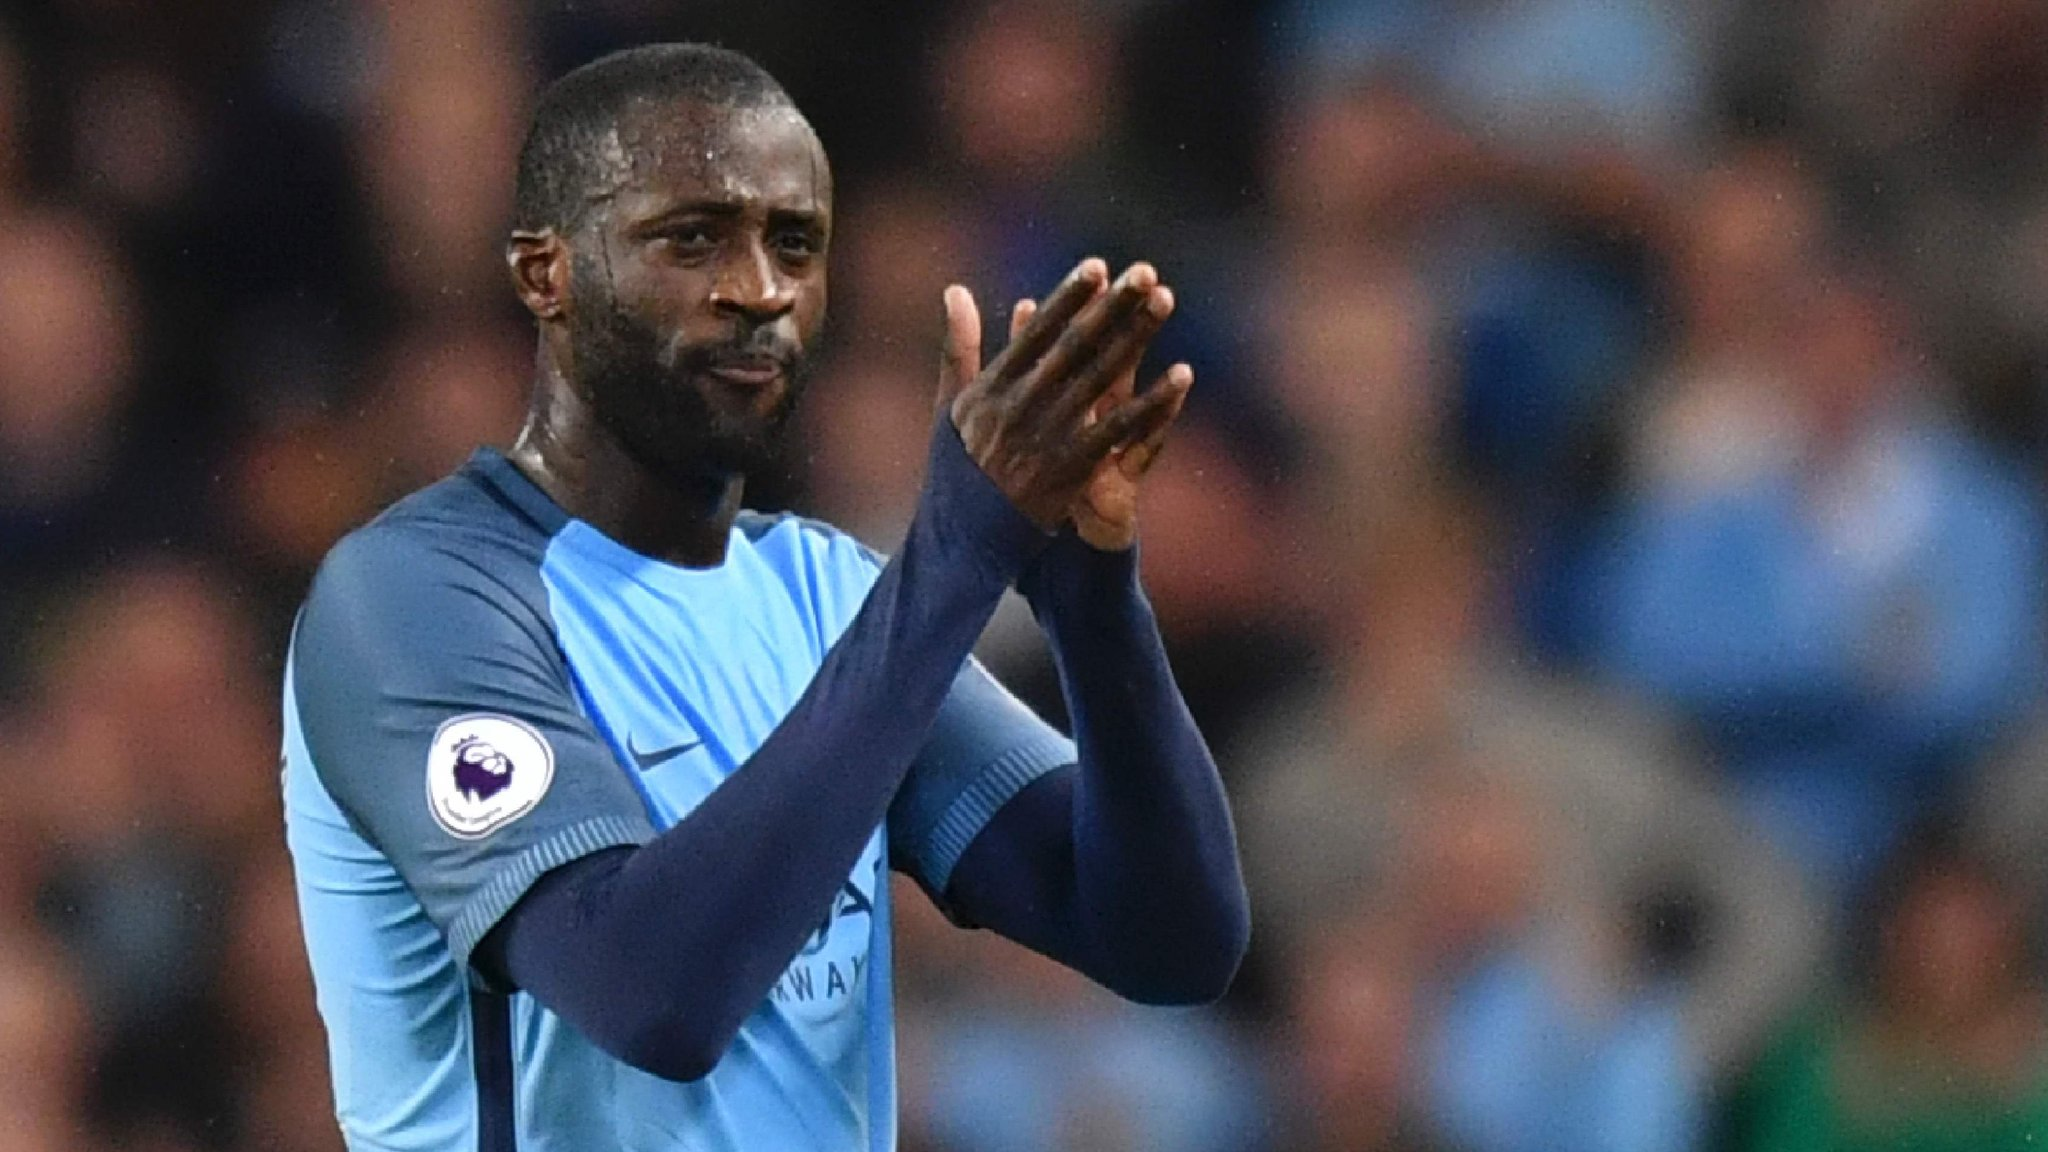 Toure & agent to donate £100K to Manchester attack victims